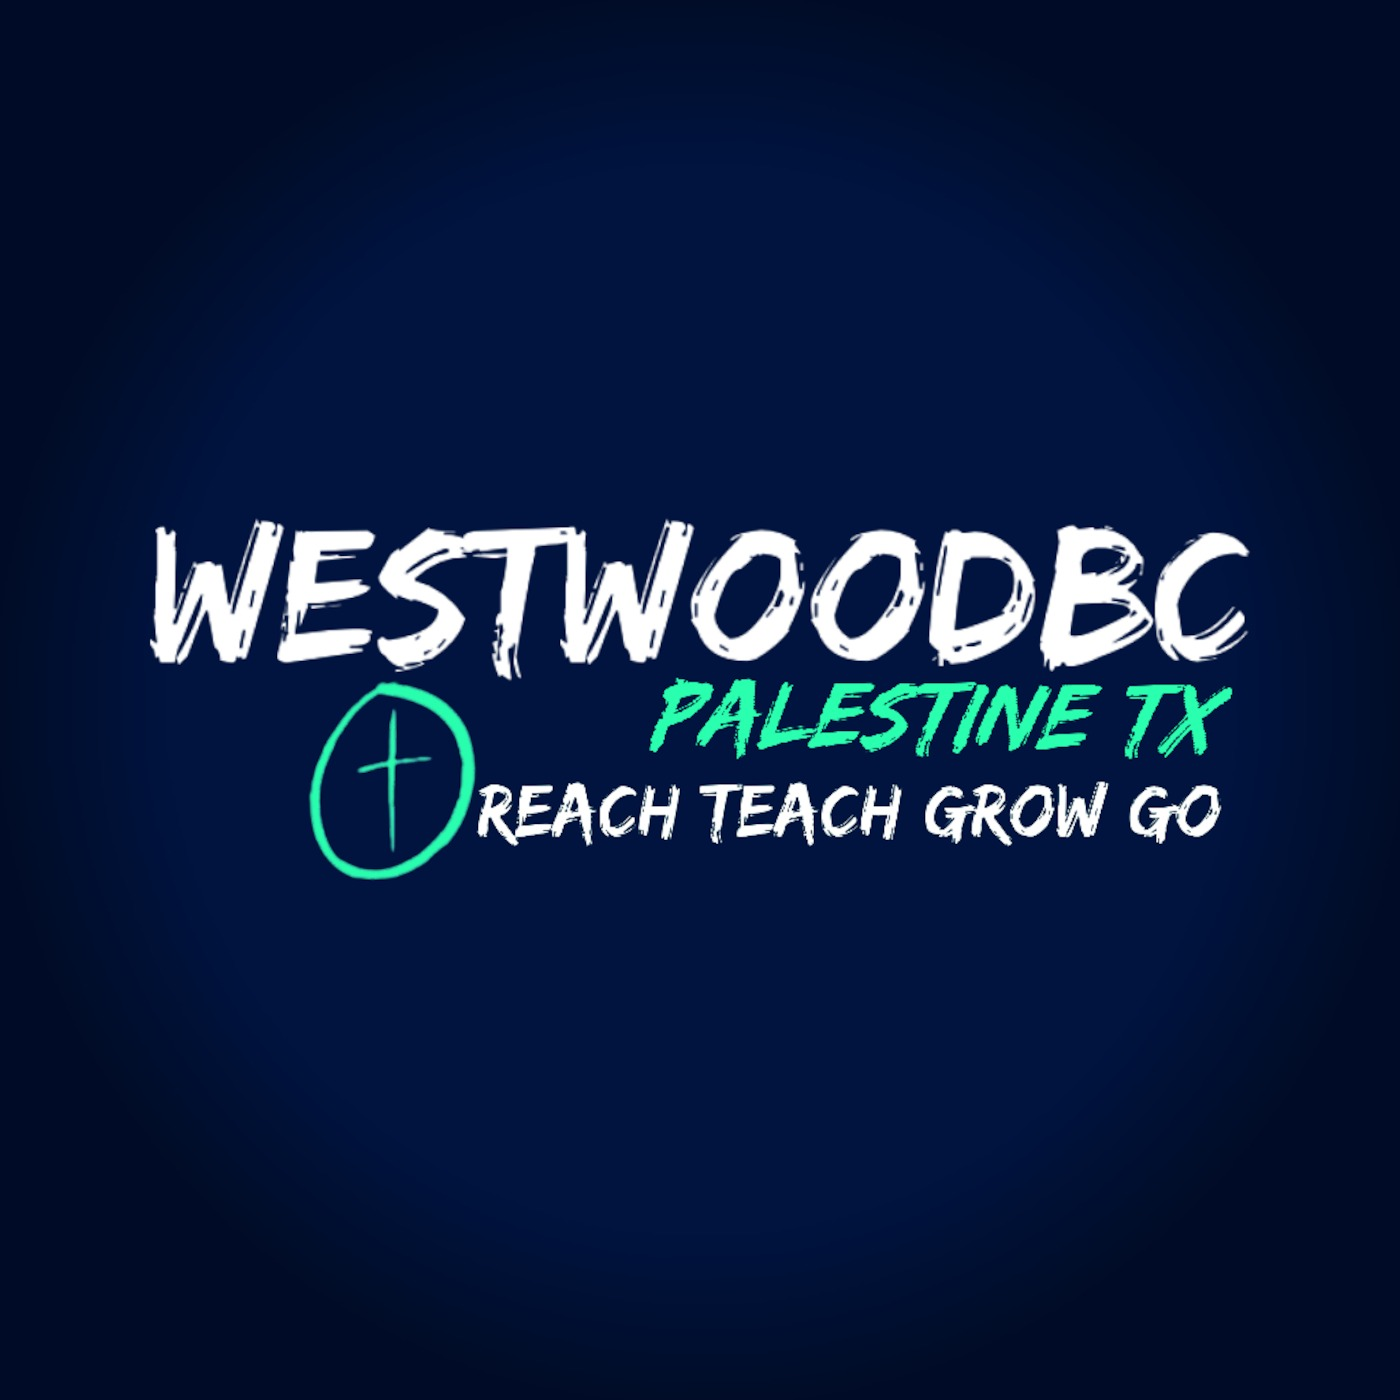 Westwood Baptist Church's Podcast